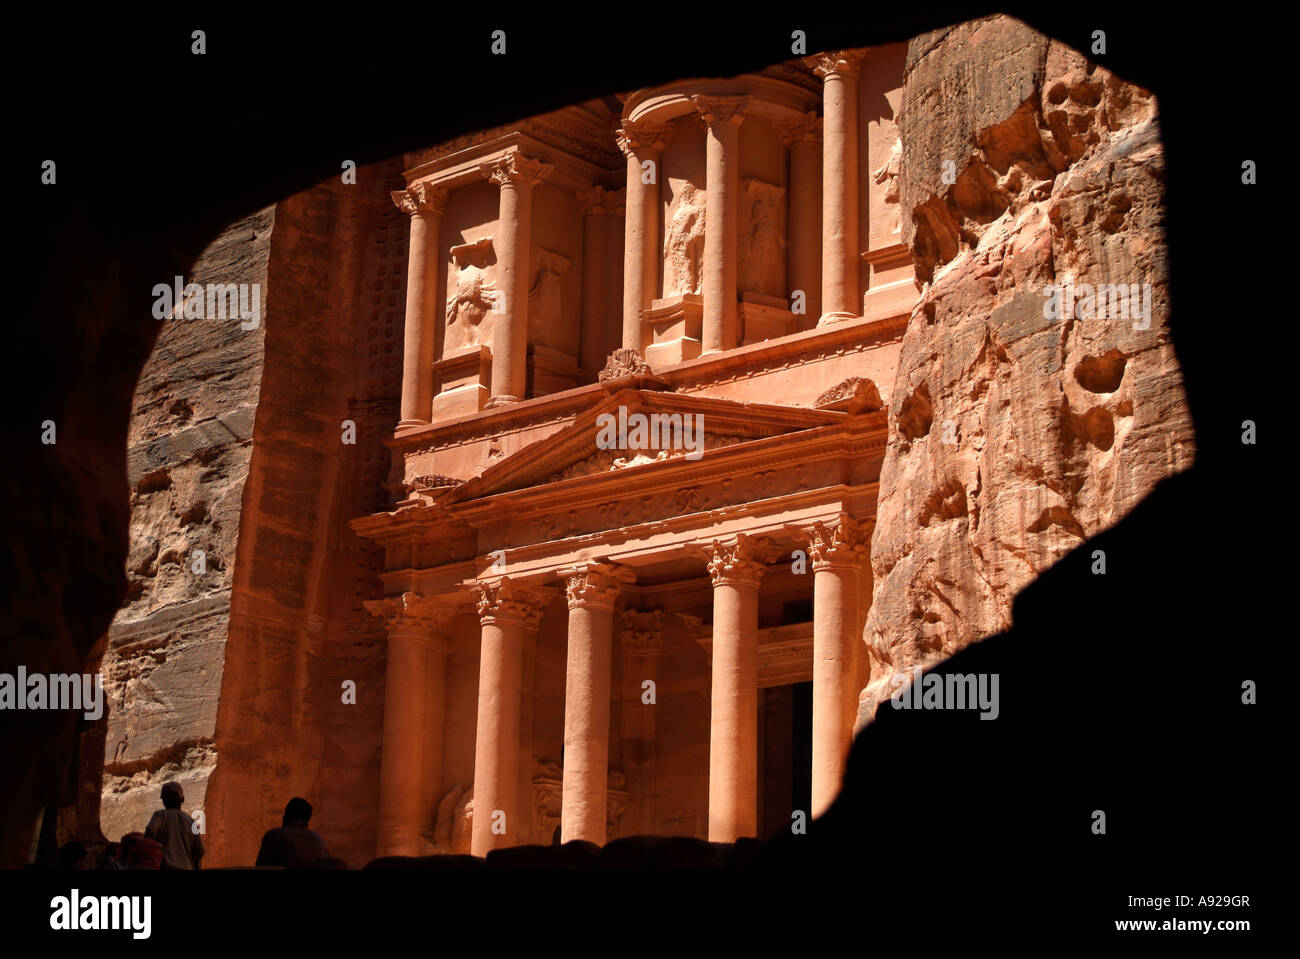 View of the Treasury from inside cave at Petra in Jordan - Stock Image